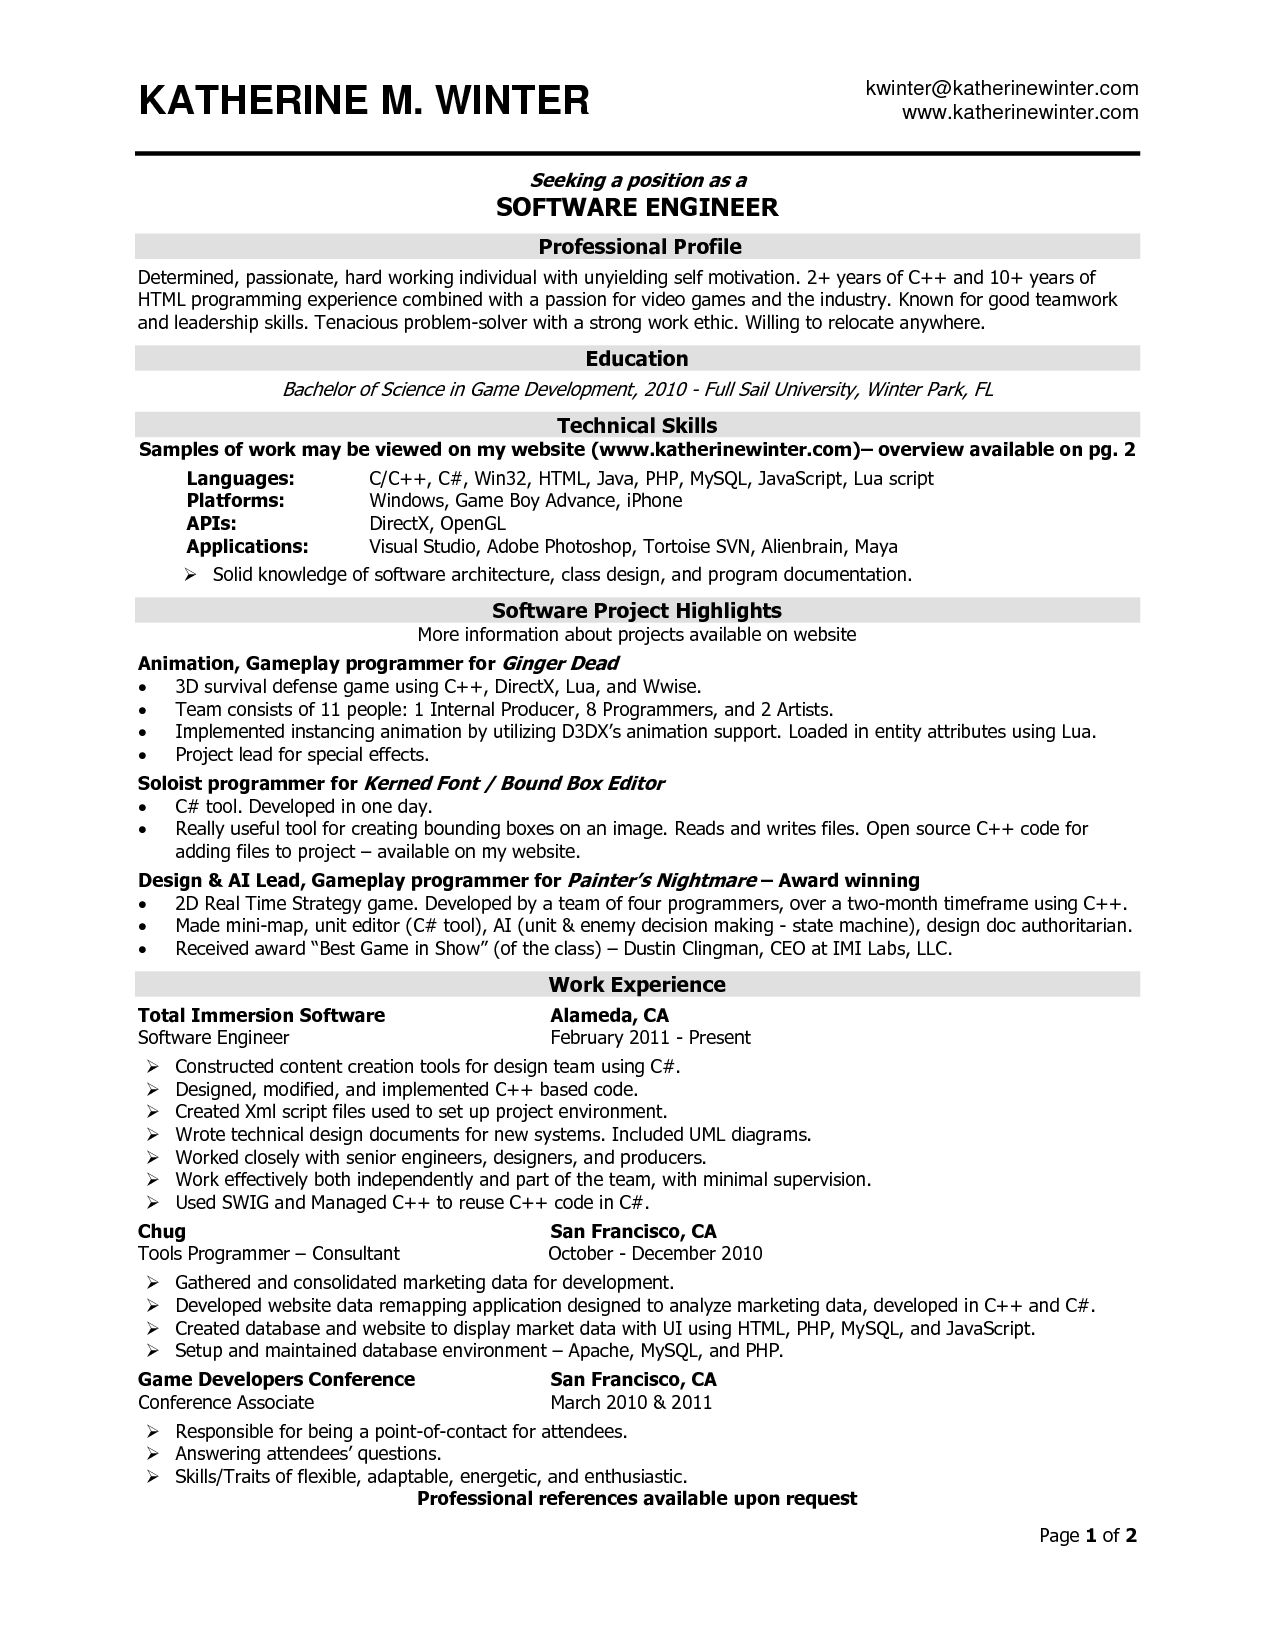 experienced software engineer resume task list templates